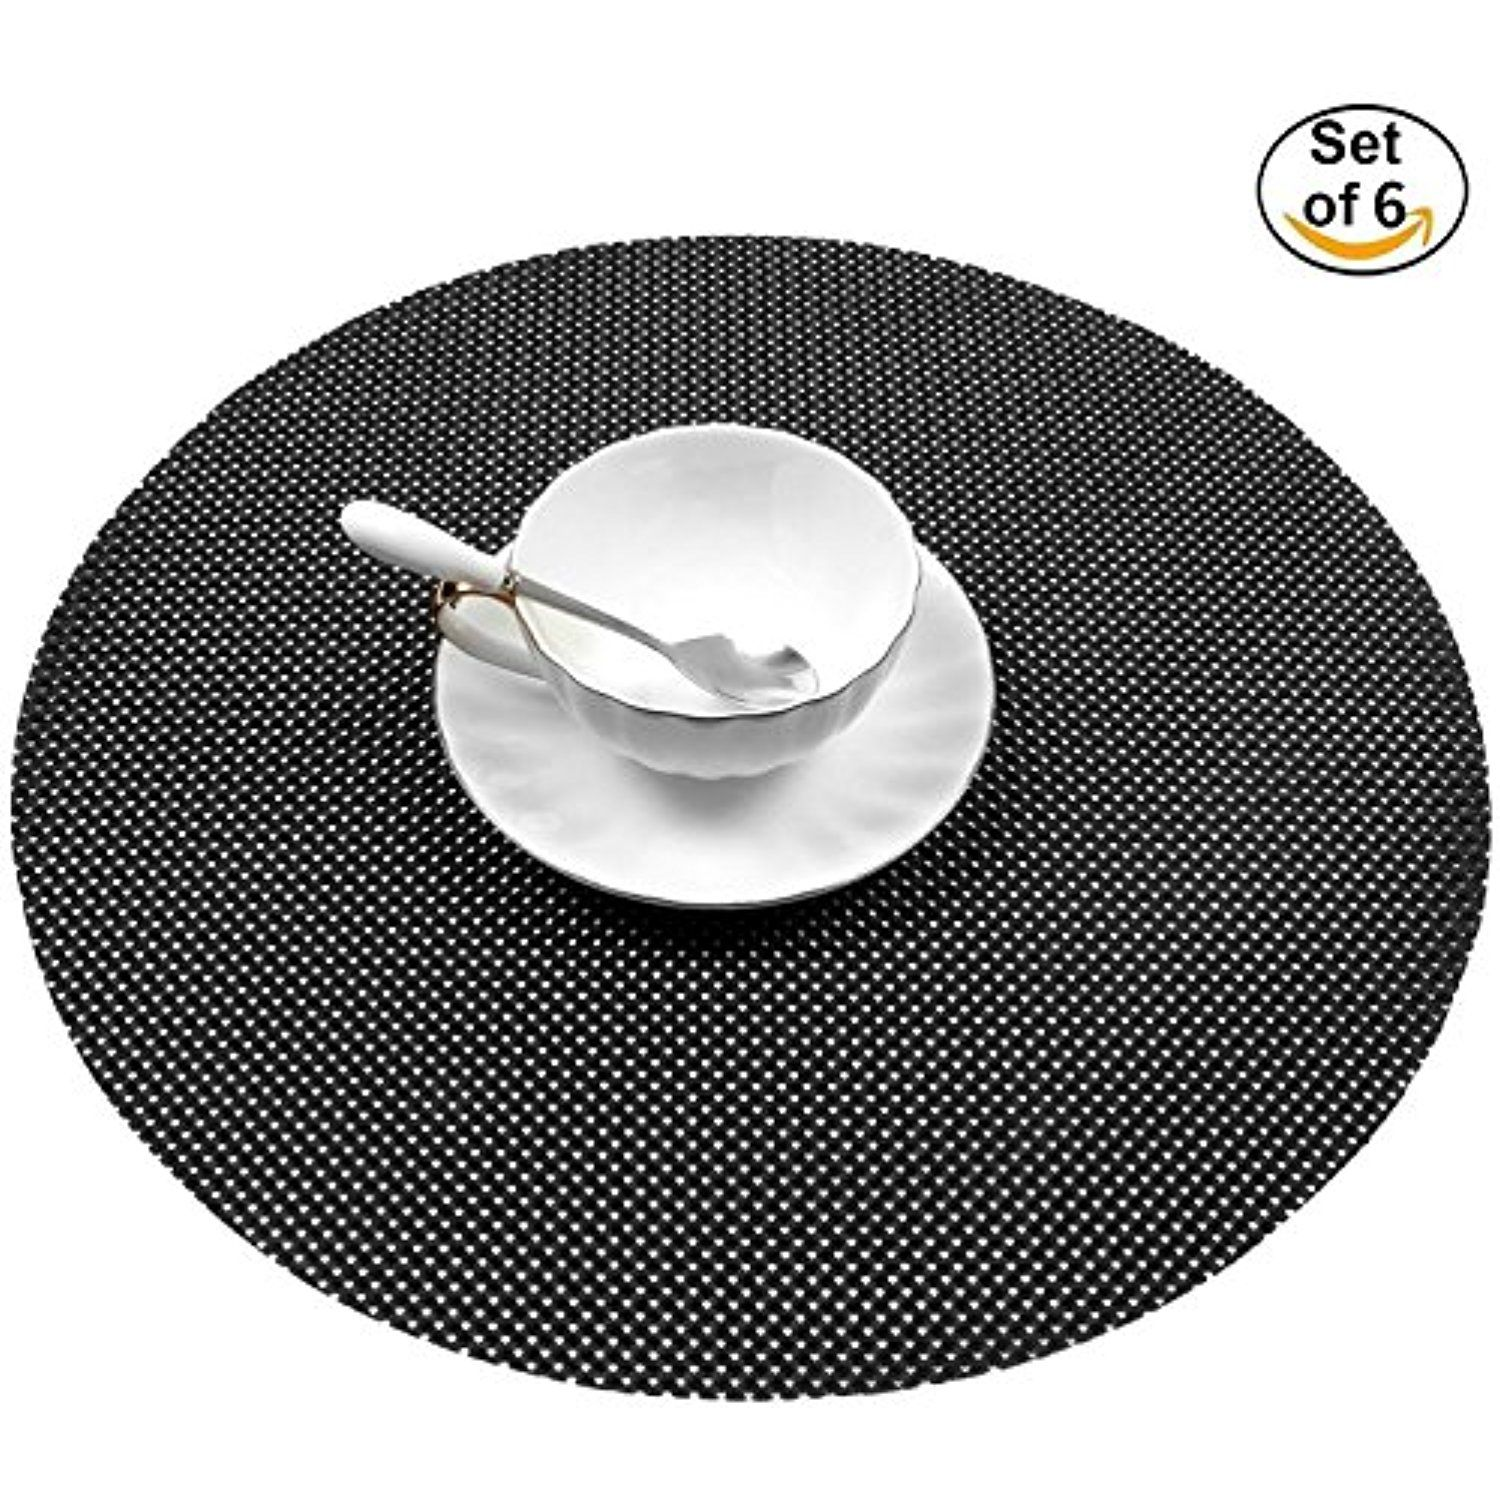 Placemats Round Black 15 Washable For Table Set